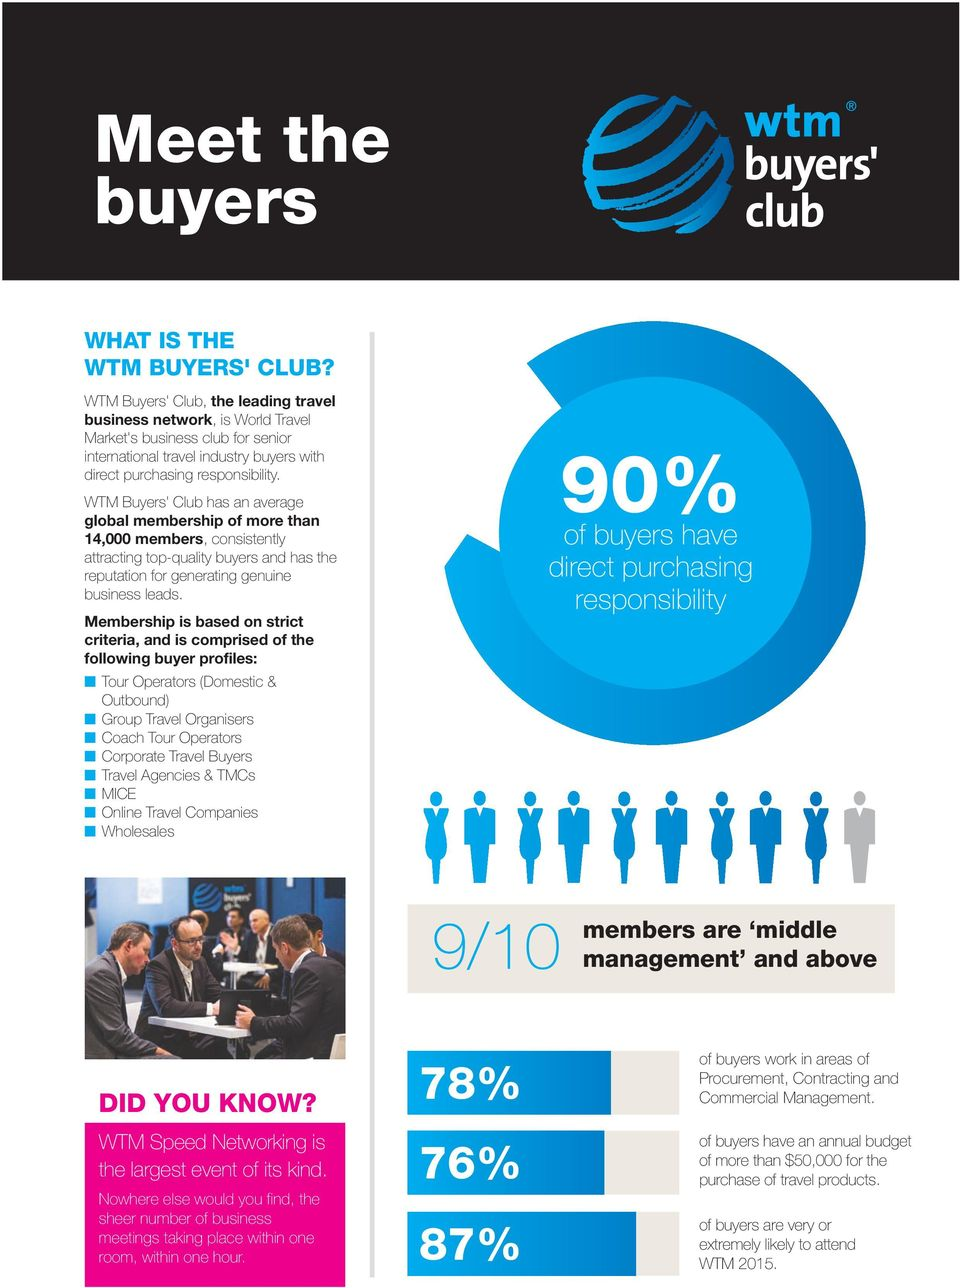 WTM Buyers' Club has an average global membership of more than 14,000 members, consistently attracting top-quality buyers and has the reputation for generating genuine business leads.